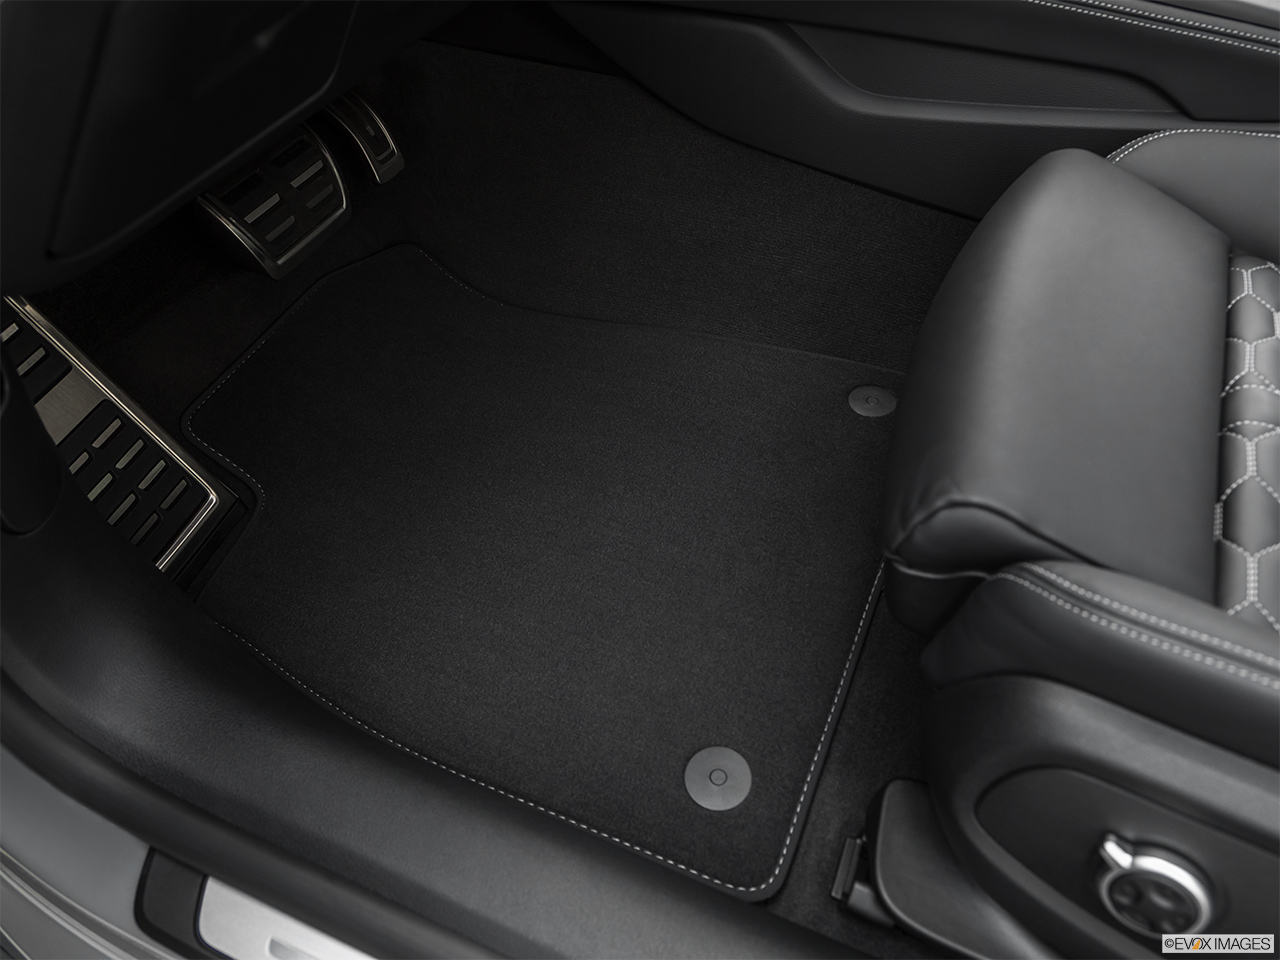 2019 Audi RS 5 Sportback 2.9 TFSI Driver's floor mat and pedals. Mid-seat level from outside looking in.